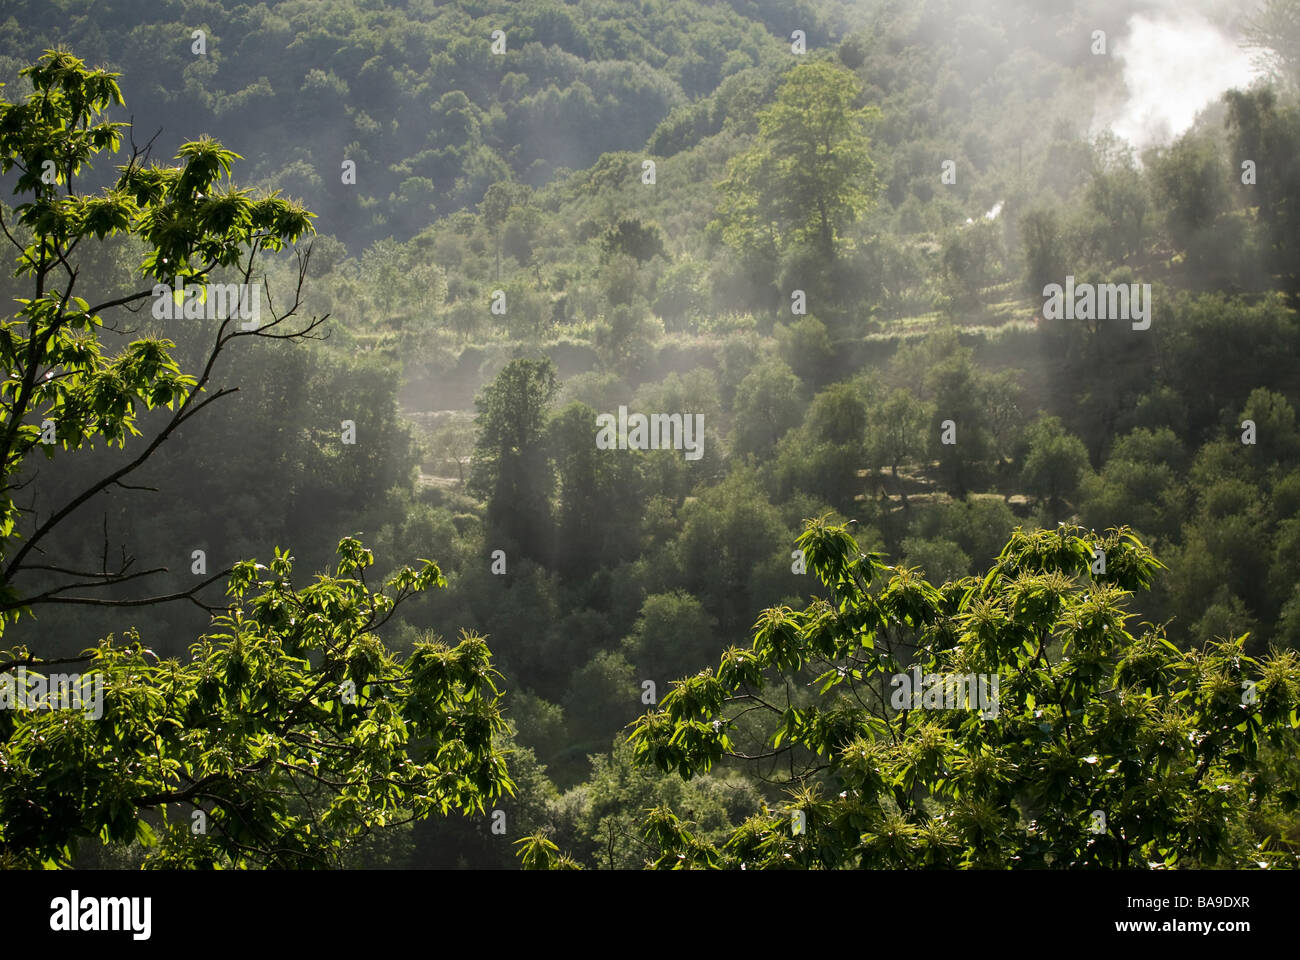 photograph of brush fire smoke in hilly countryside - Stock Image